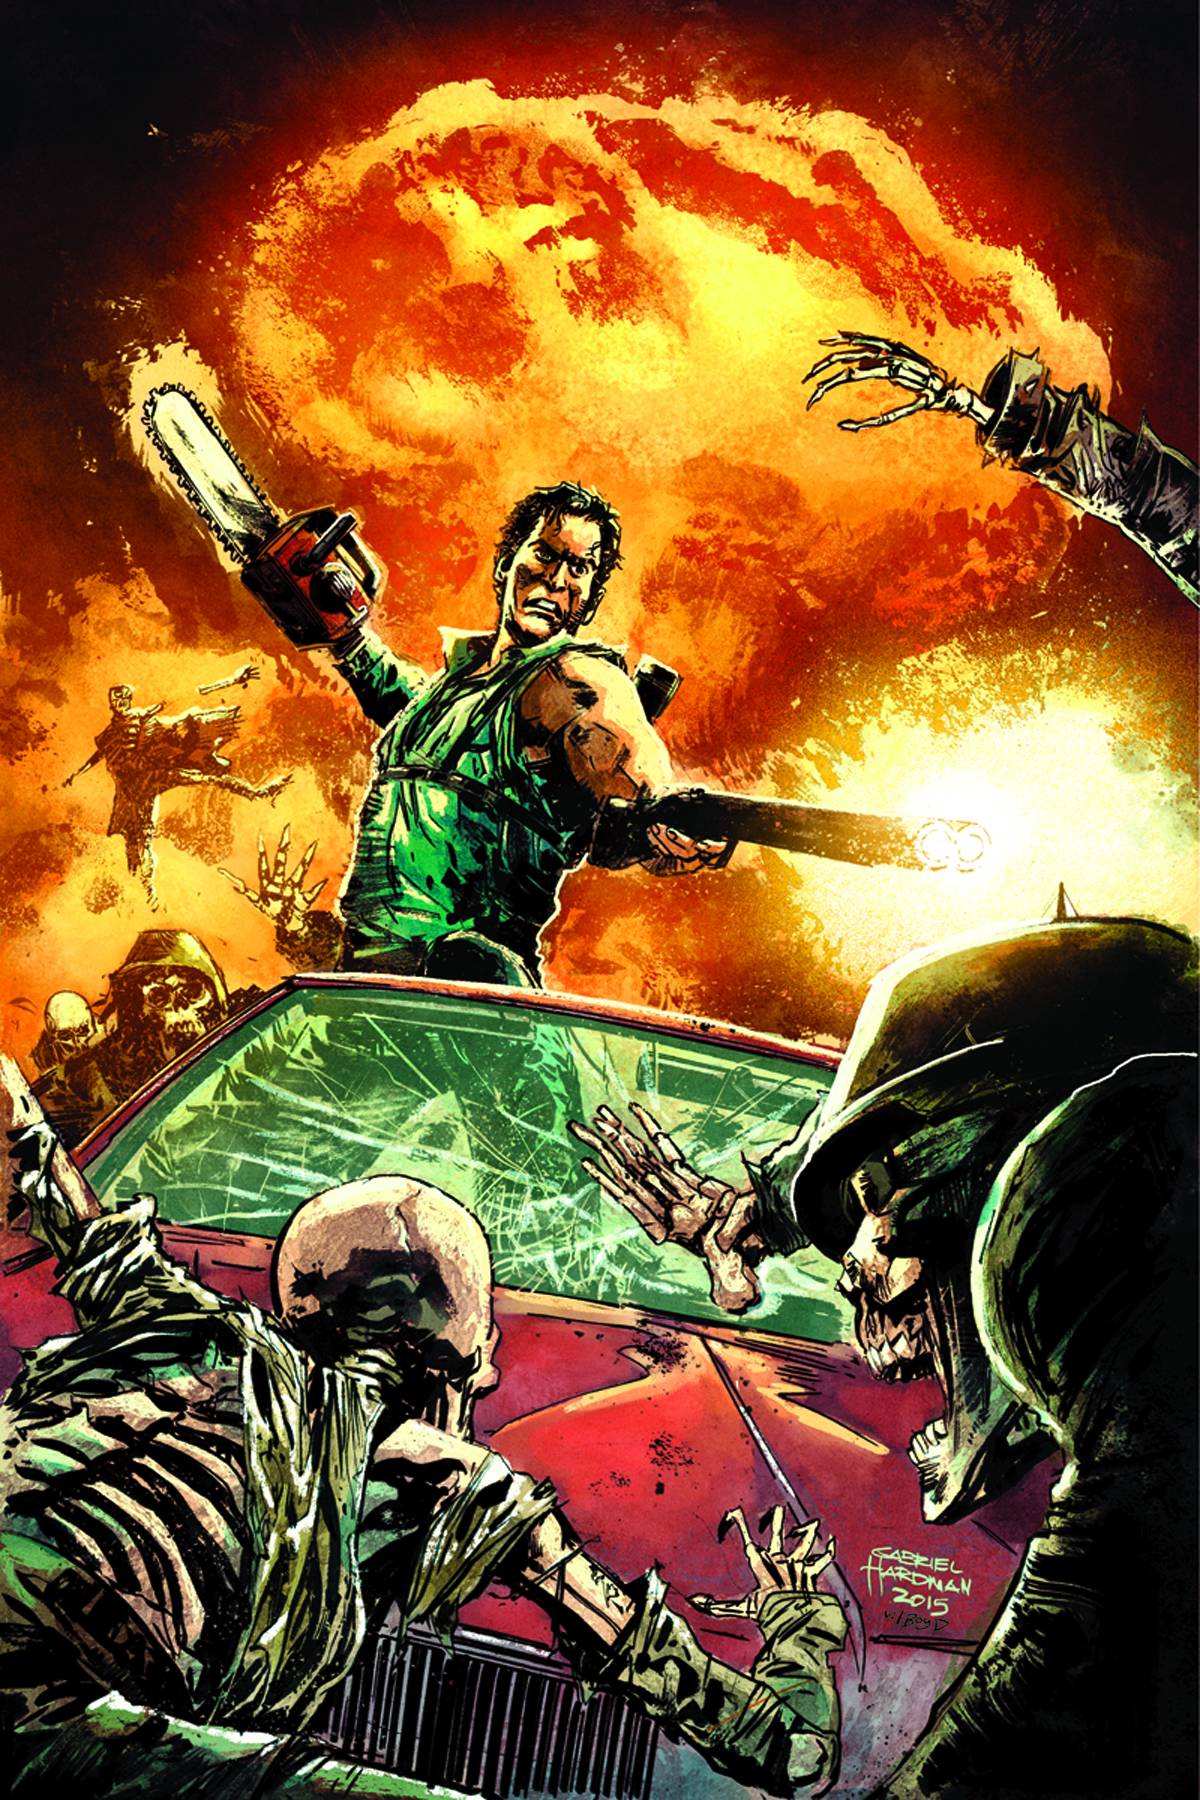 ARMY OF DARKNESS FURIOUS ROAD #1